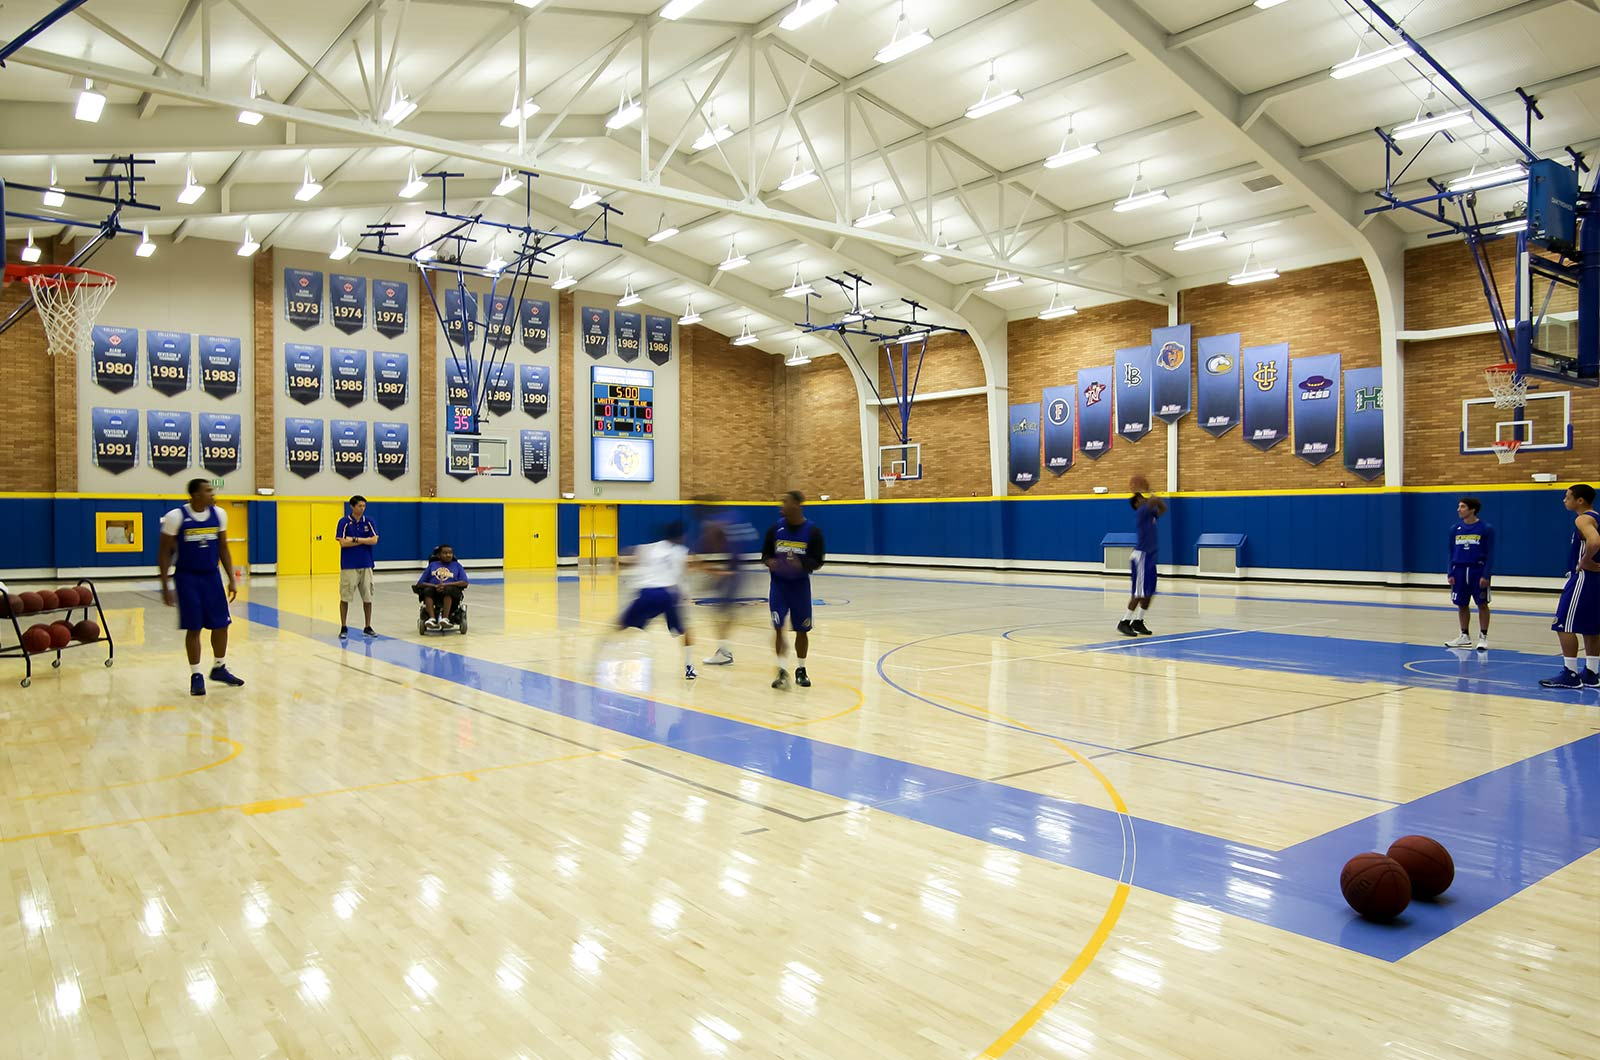 Basketbal-Team-at-Practice-UCR-360-Tours-Virtual-Tour-Company-College-Vitual-Tours-Virtual-Tours-For-College